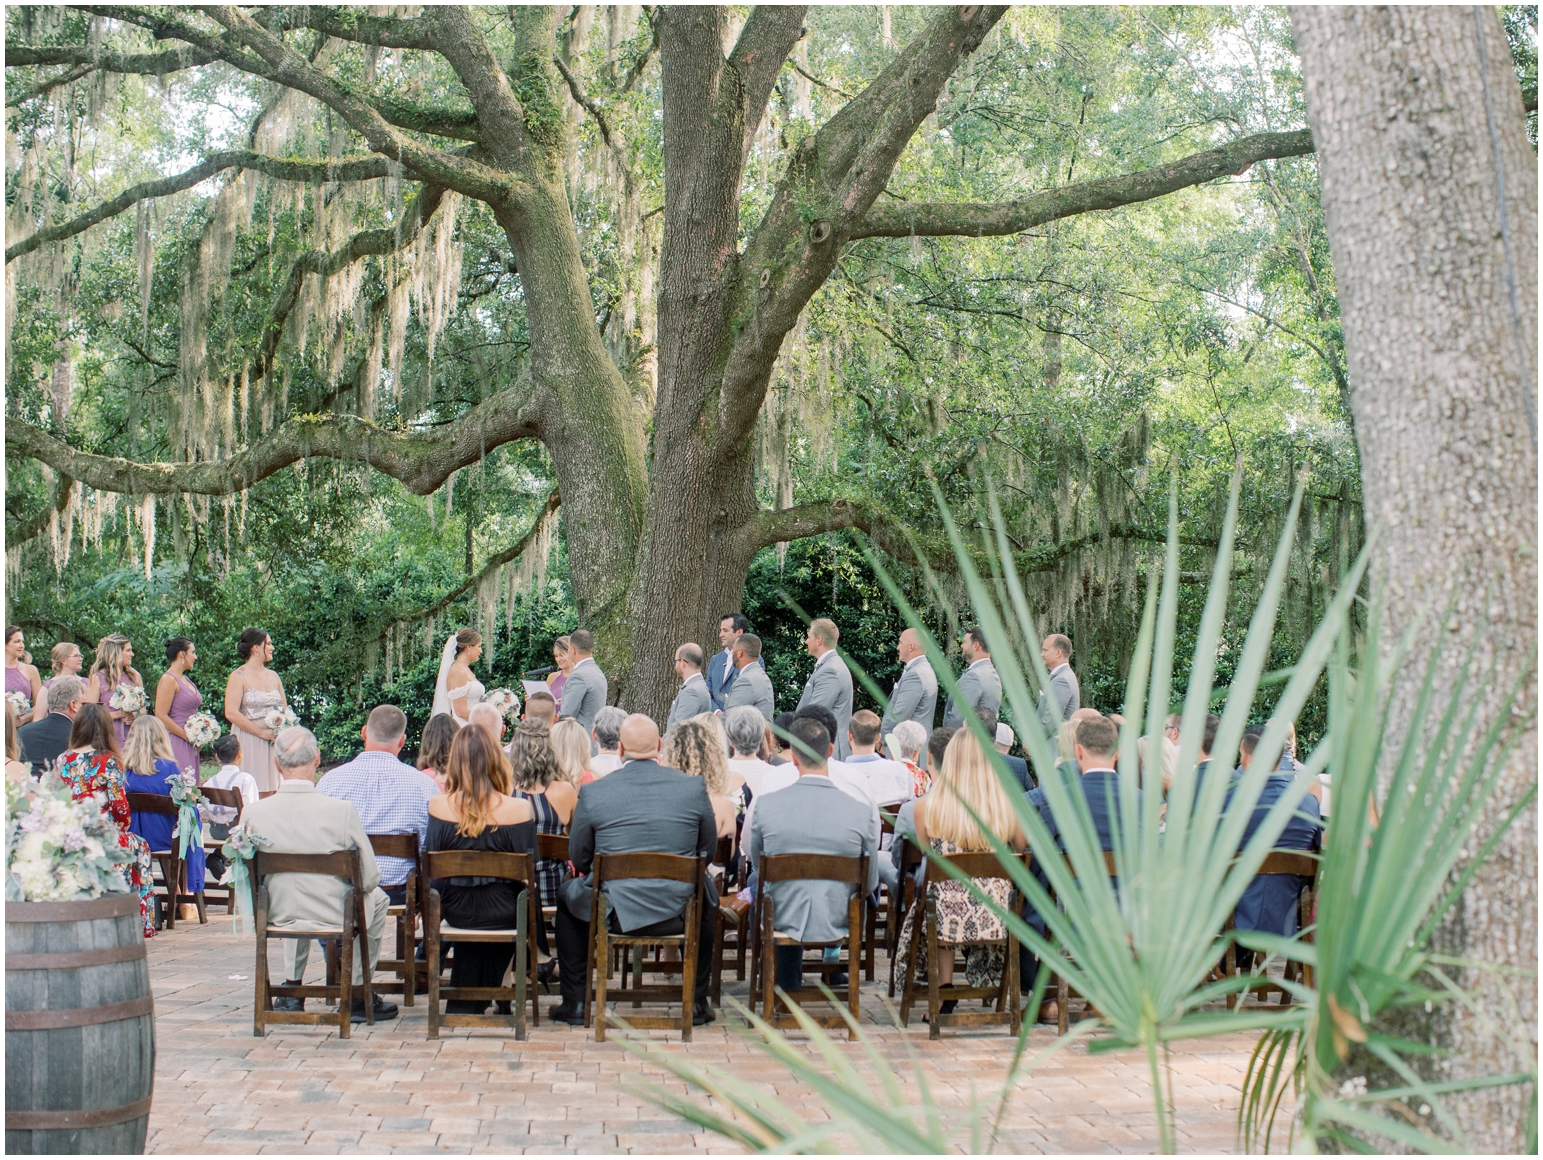 Lisa Silva Photography- Jacksonville, St Augustine, Fernandina Beach, Amelia Island, Ponte Vedra Beach, North East Florida Fine Art Film Photographer- Ashley and Shawn's wedding at bowing oaks plantation_0065.jpg